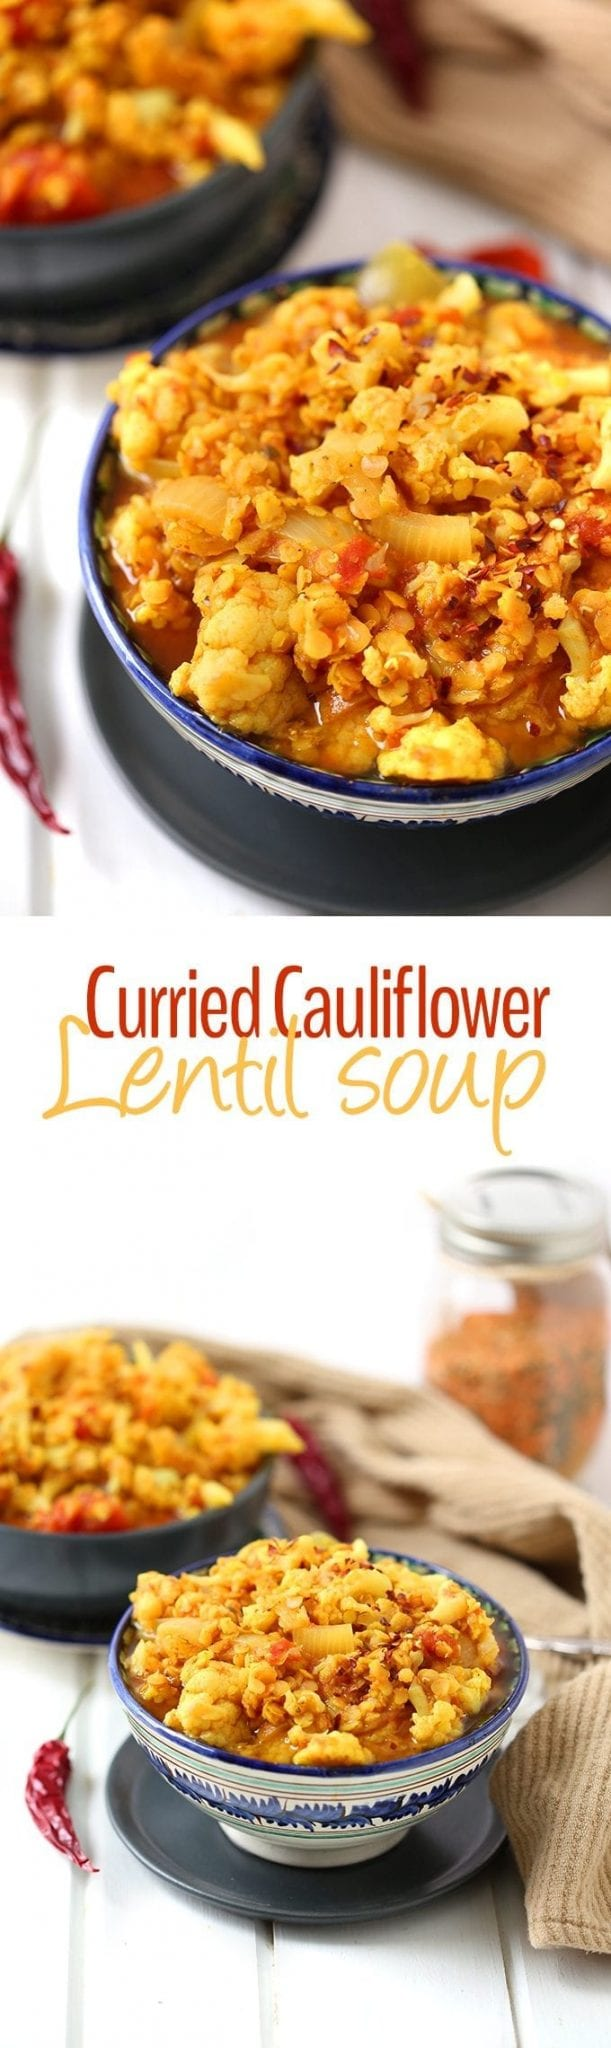 A healthy vegetarian recipe for Curried Cauliflower and Lentil Soup, this dish will quickly become a lunch staple. Just whip up a pot at the beginning of the week and have healthy meals for days!